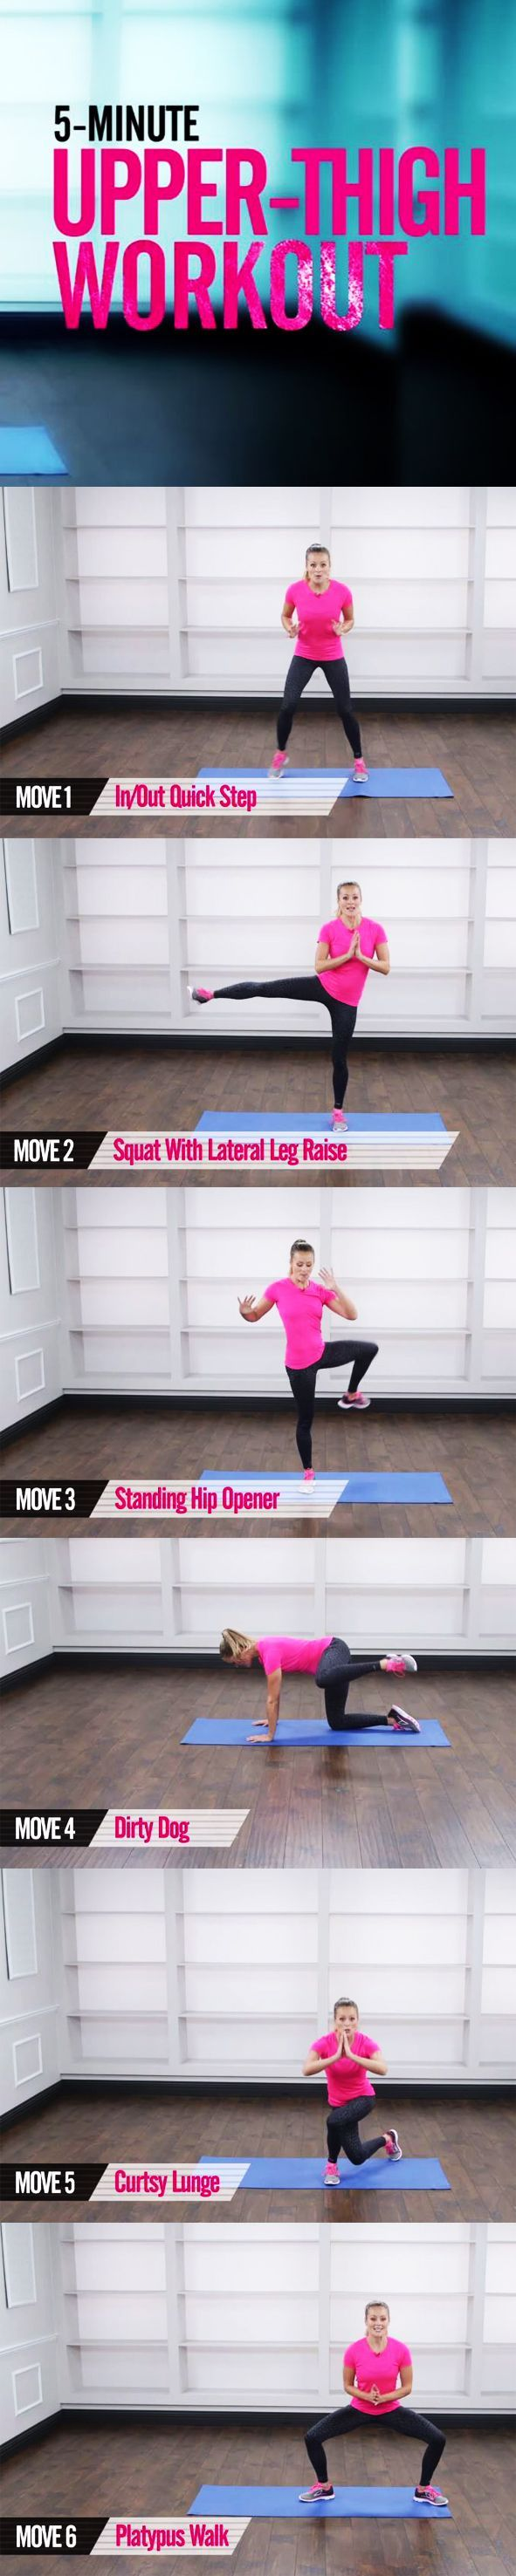 leaner thigh and legs? try this easy step and more in this app ^_^